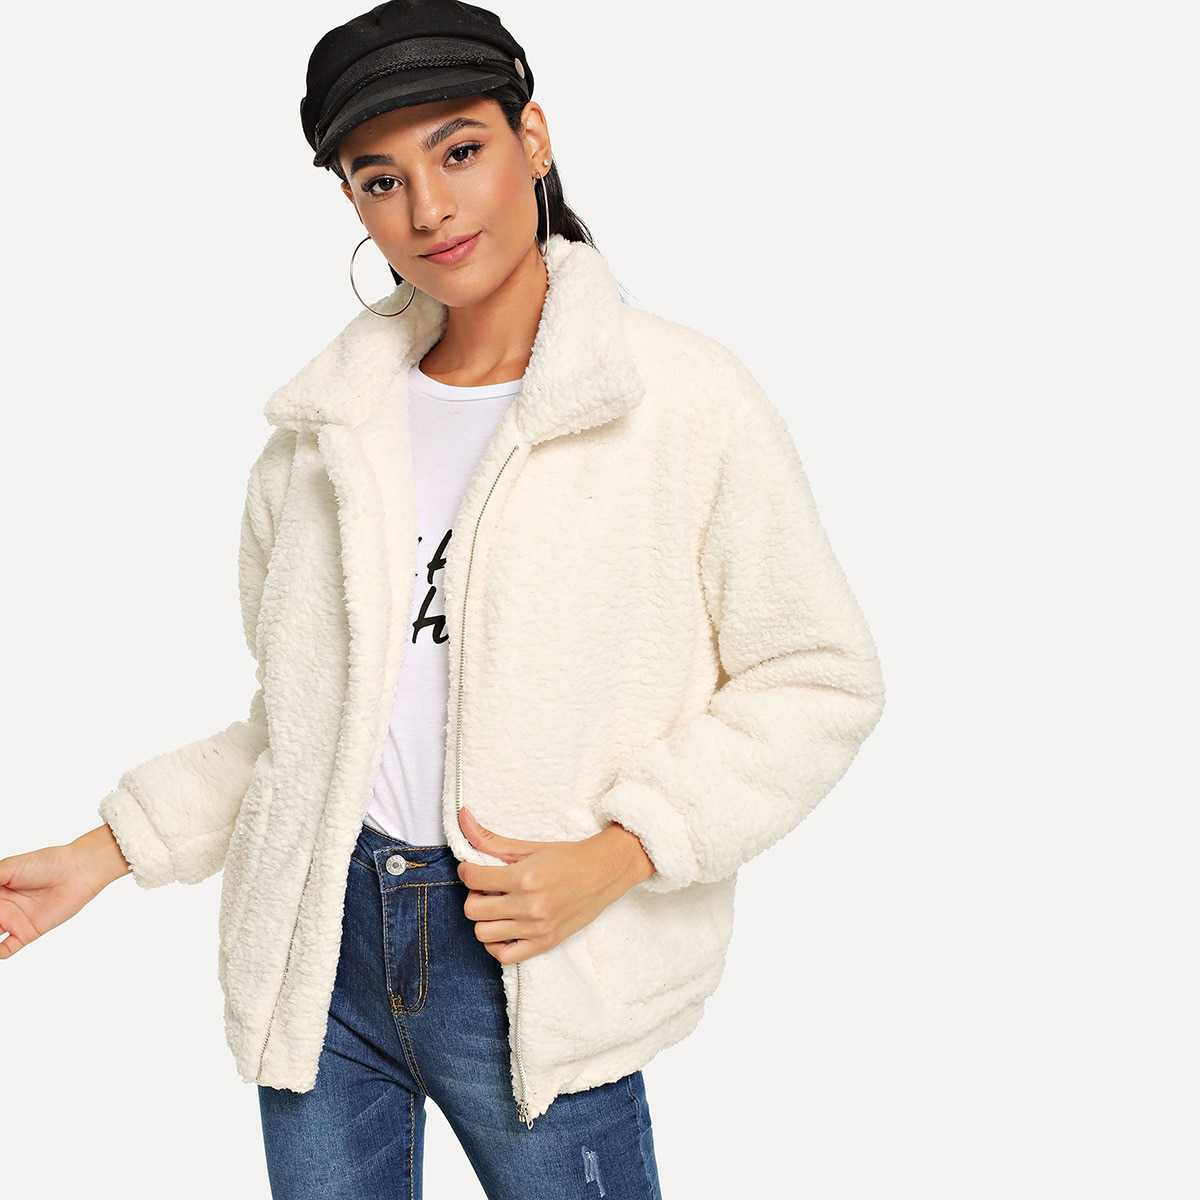 Zip Solid Teddy Jacket in White by ROMWE on GOOFASH